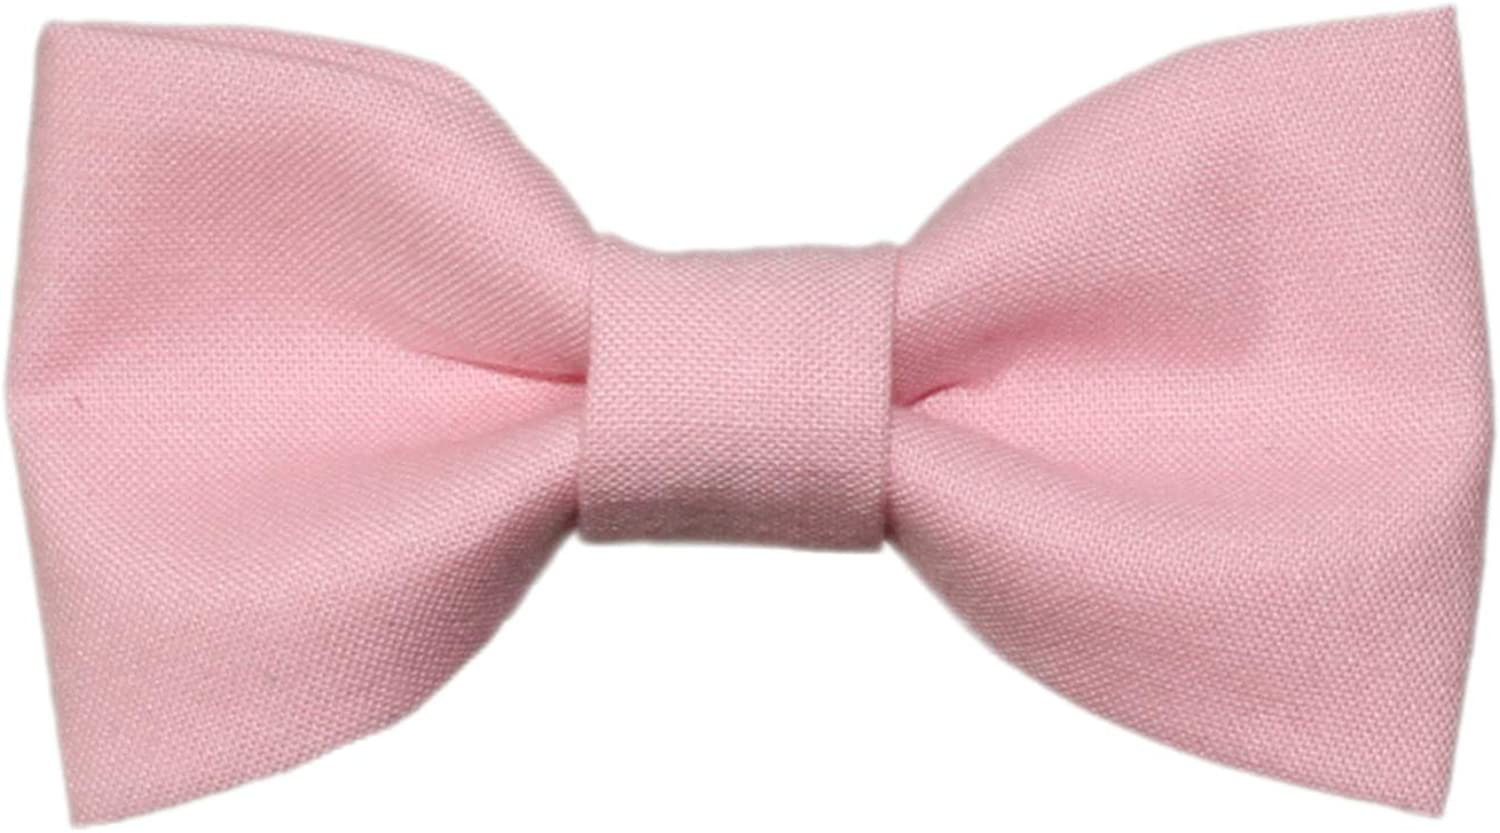 Toddler Boy 4T 5T Peony Pink Clip On Cotton Bow Tie - Made In The USA